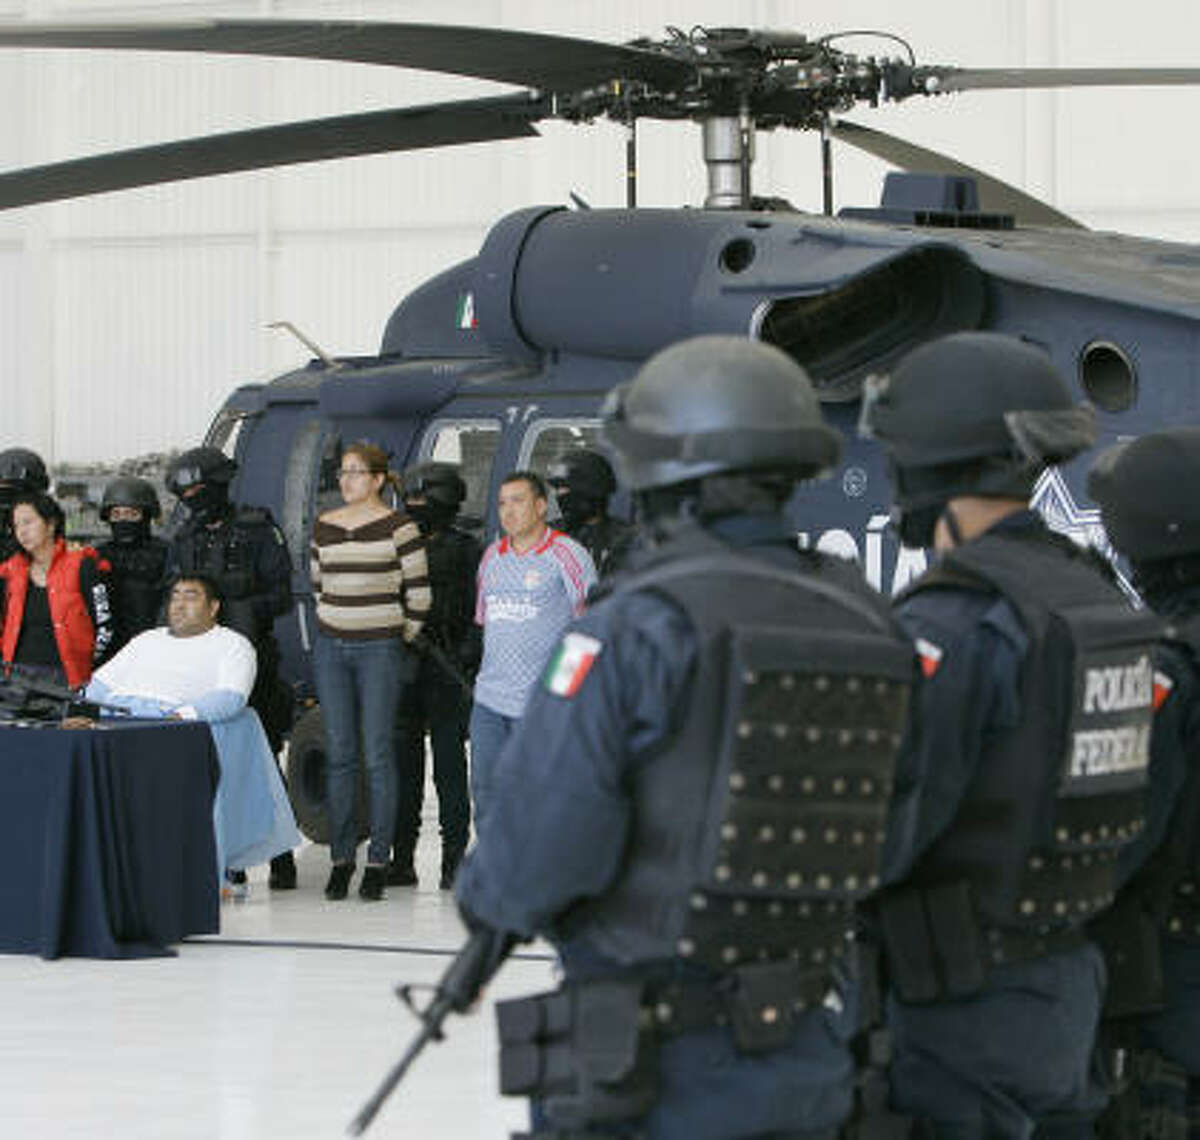 Suspects identified as belonging to Los Zetas are presented to the media after an arrest in last month in Mexico City.